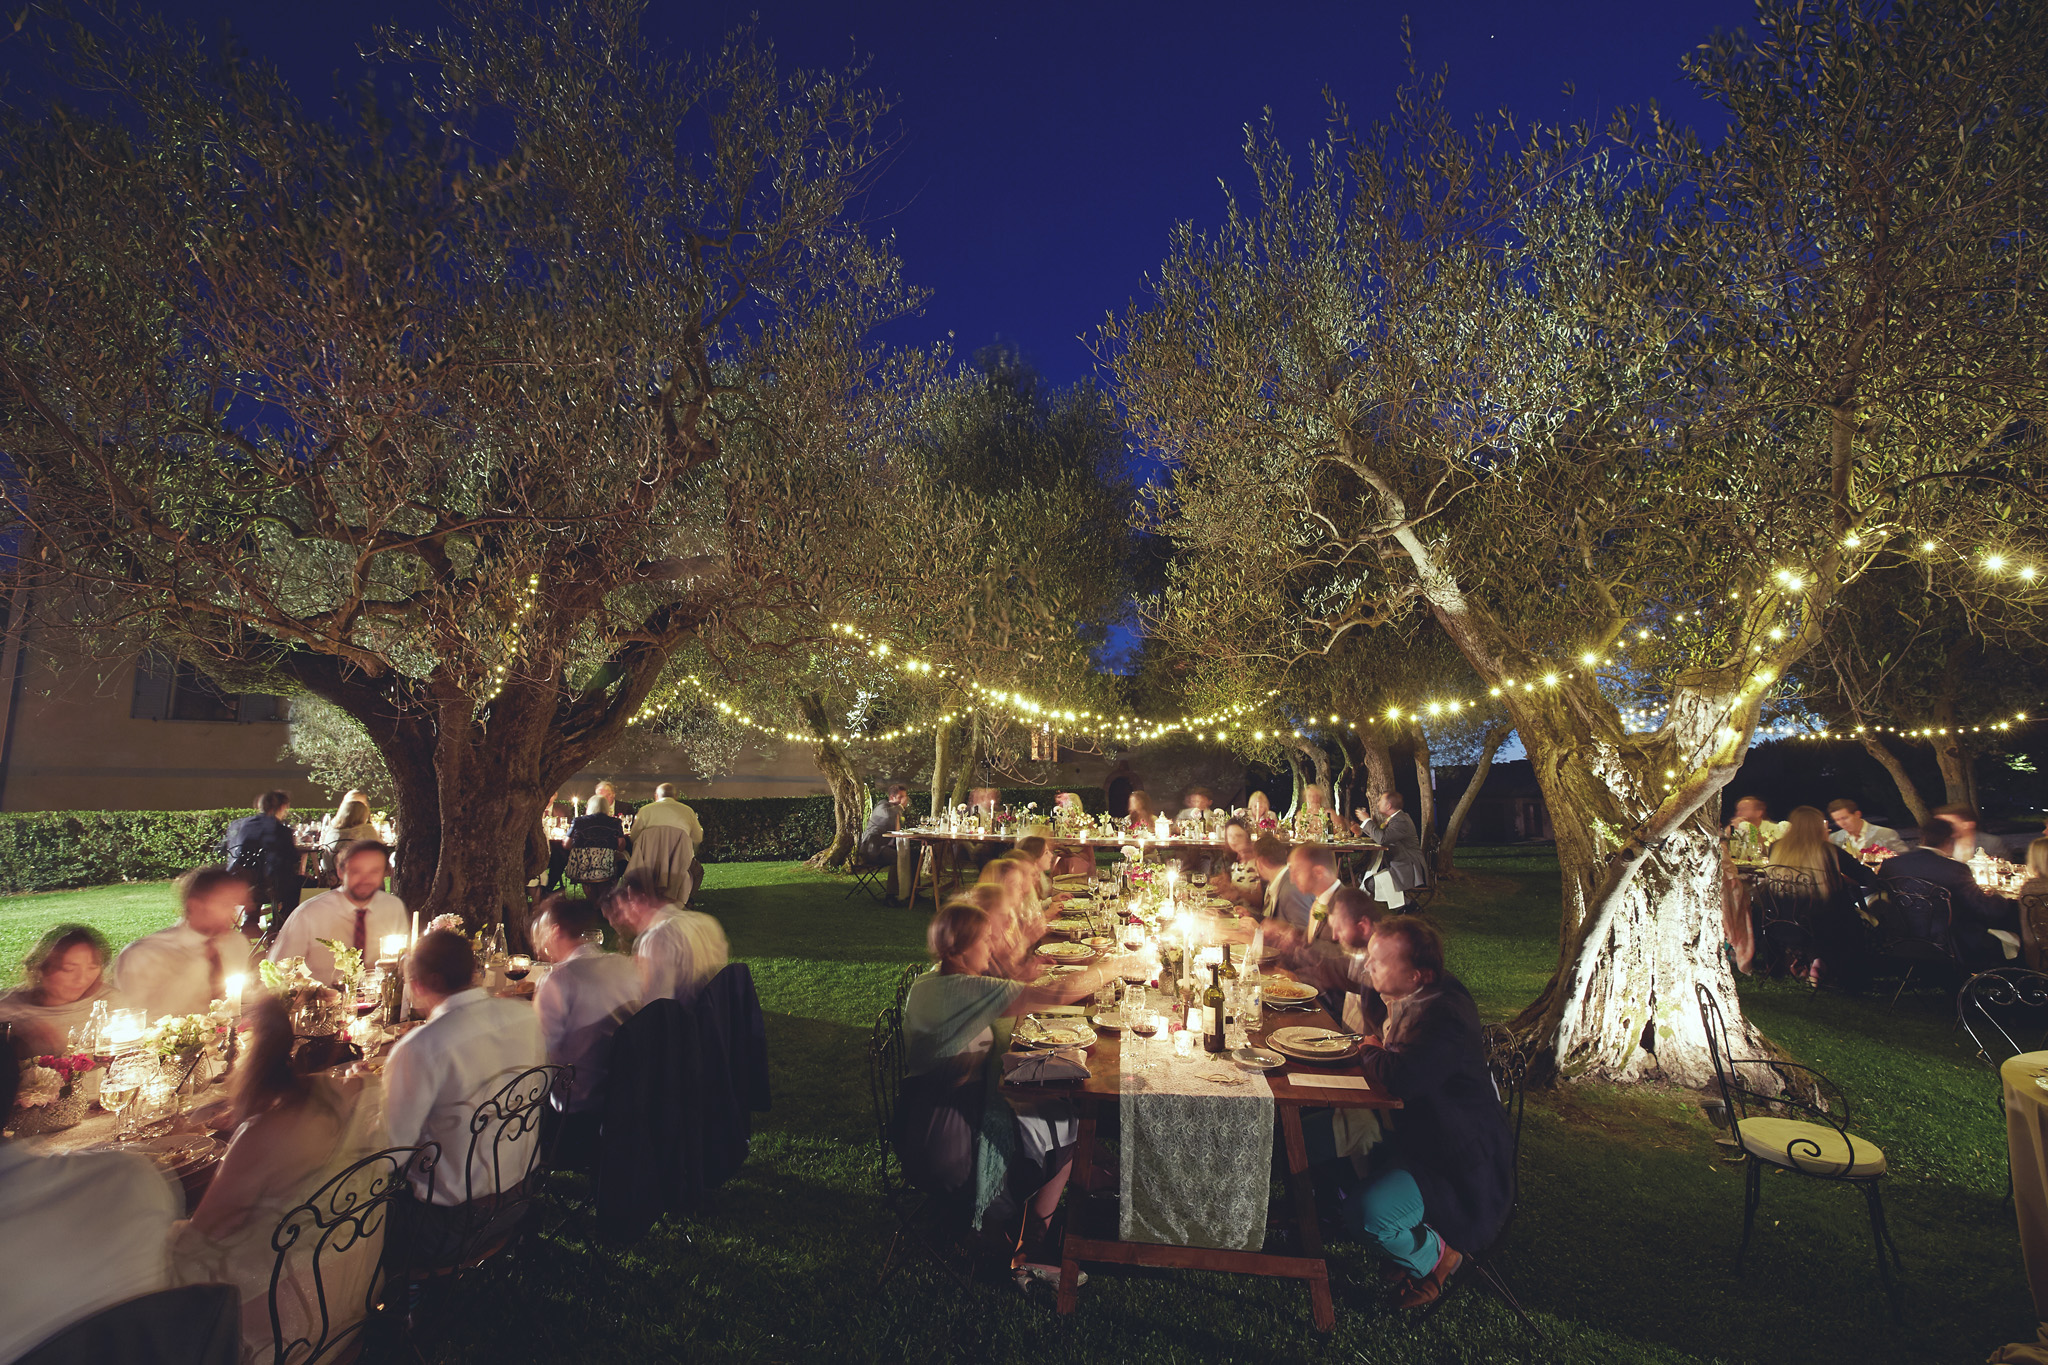 Magical night in a Tuscan olive in grove